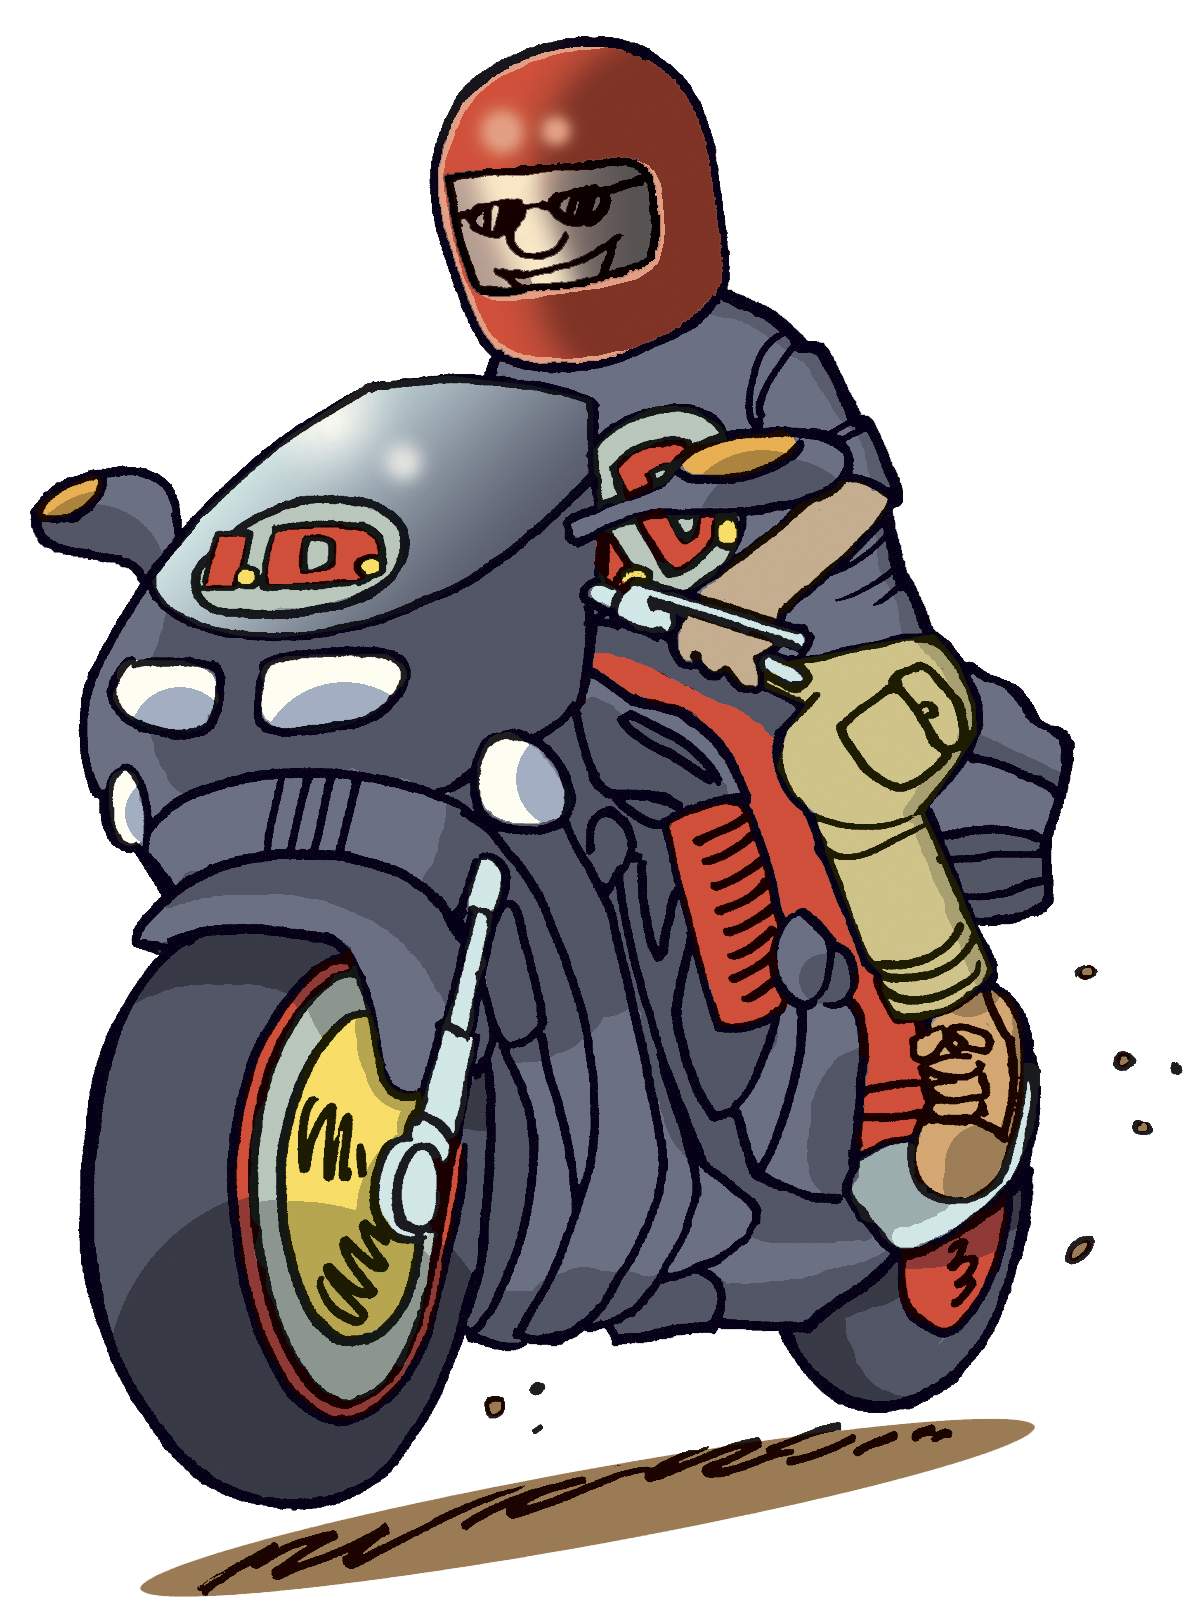 Motorcycle clipart motorbike 4 pictures motorcycle Free